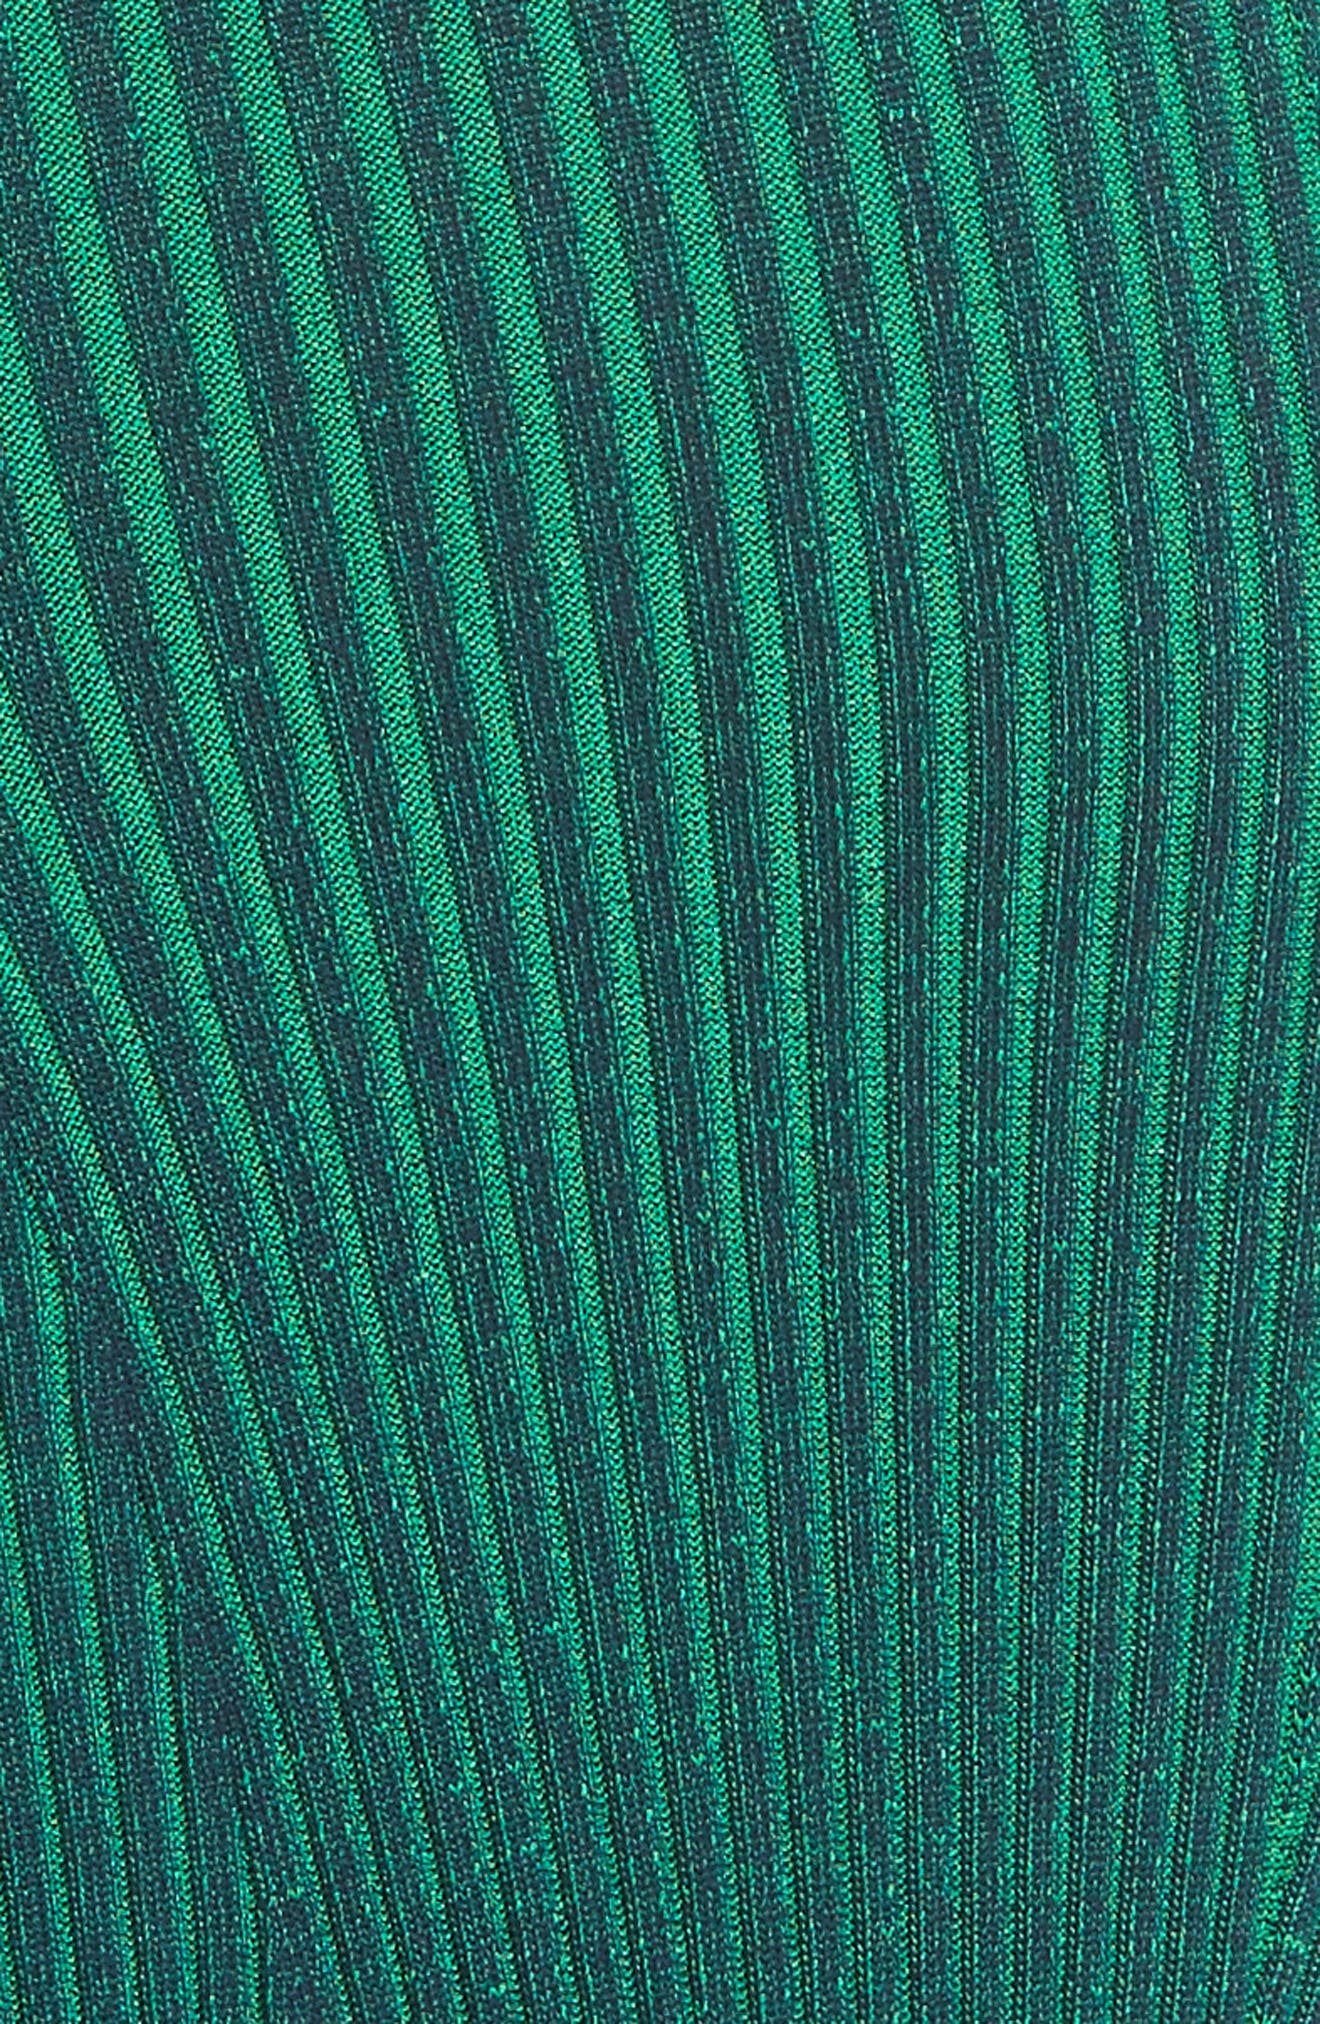 Ribbed Maxi Dress,                             Alternate thumbnail 5, color,                             Navy With Emerald Combo